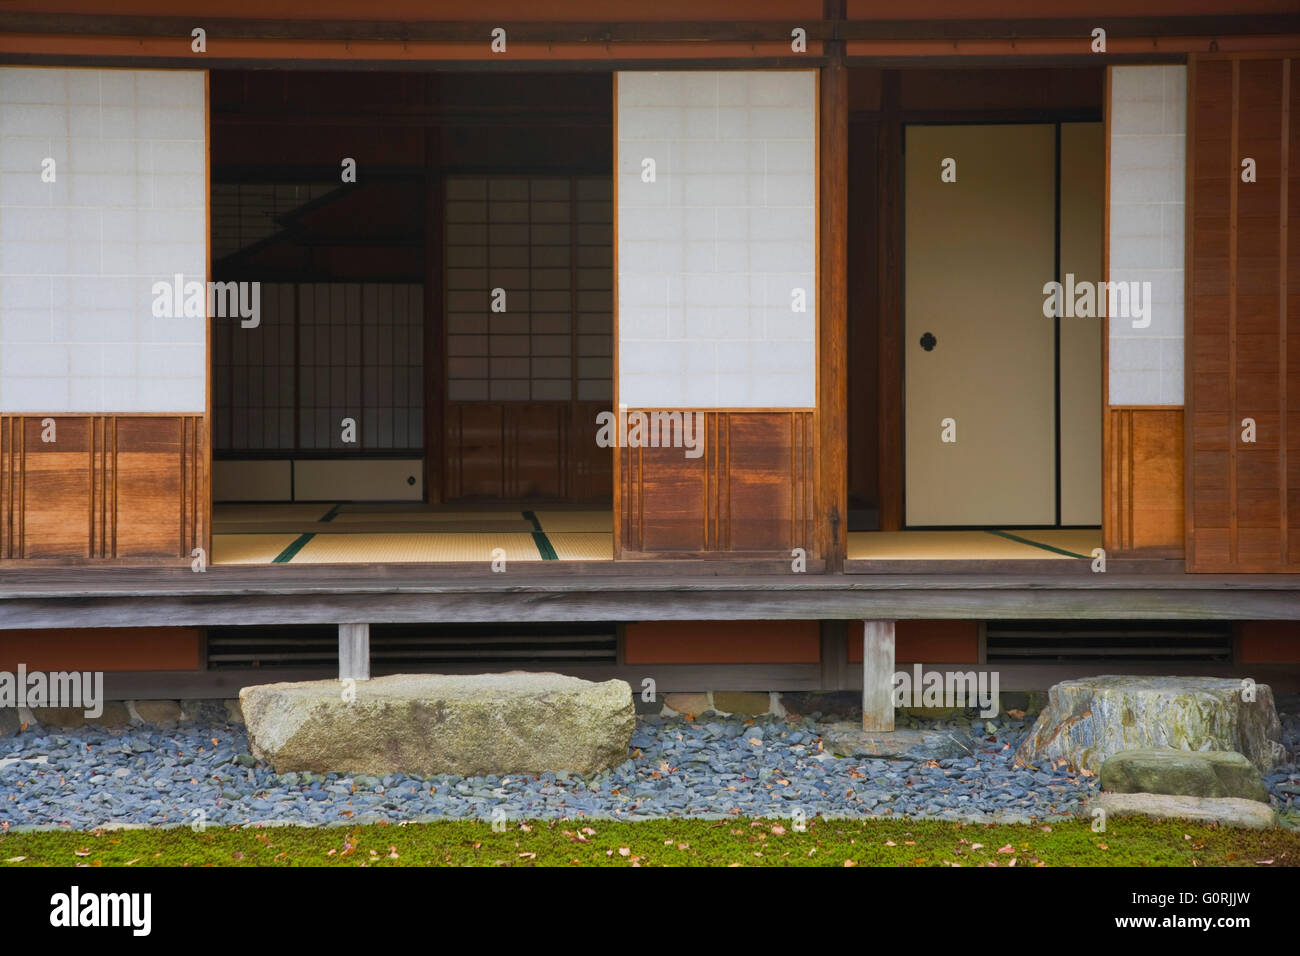 An Exterior View Shows The Shoe Removing Step Stones Wooden Veranda Stock Photo Alamy